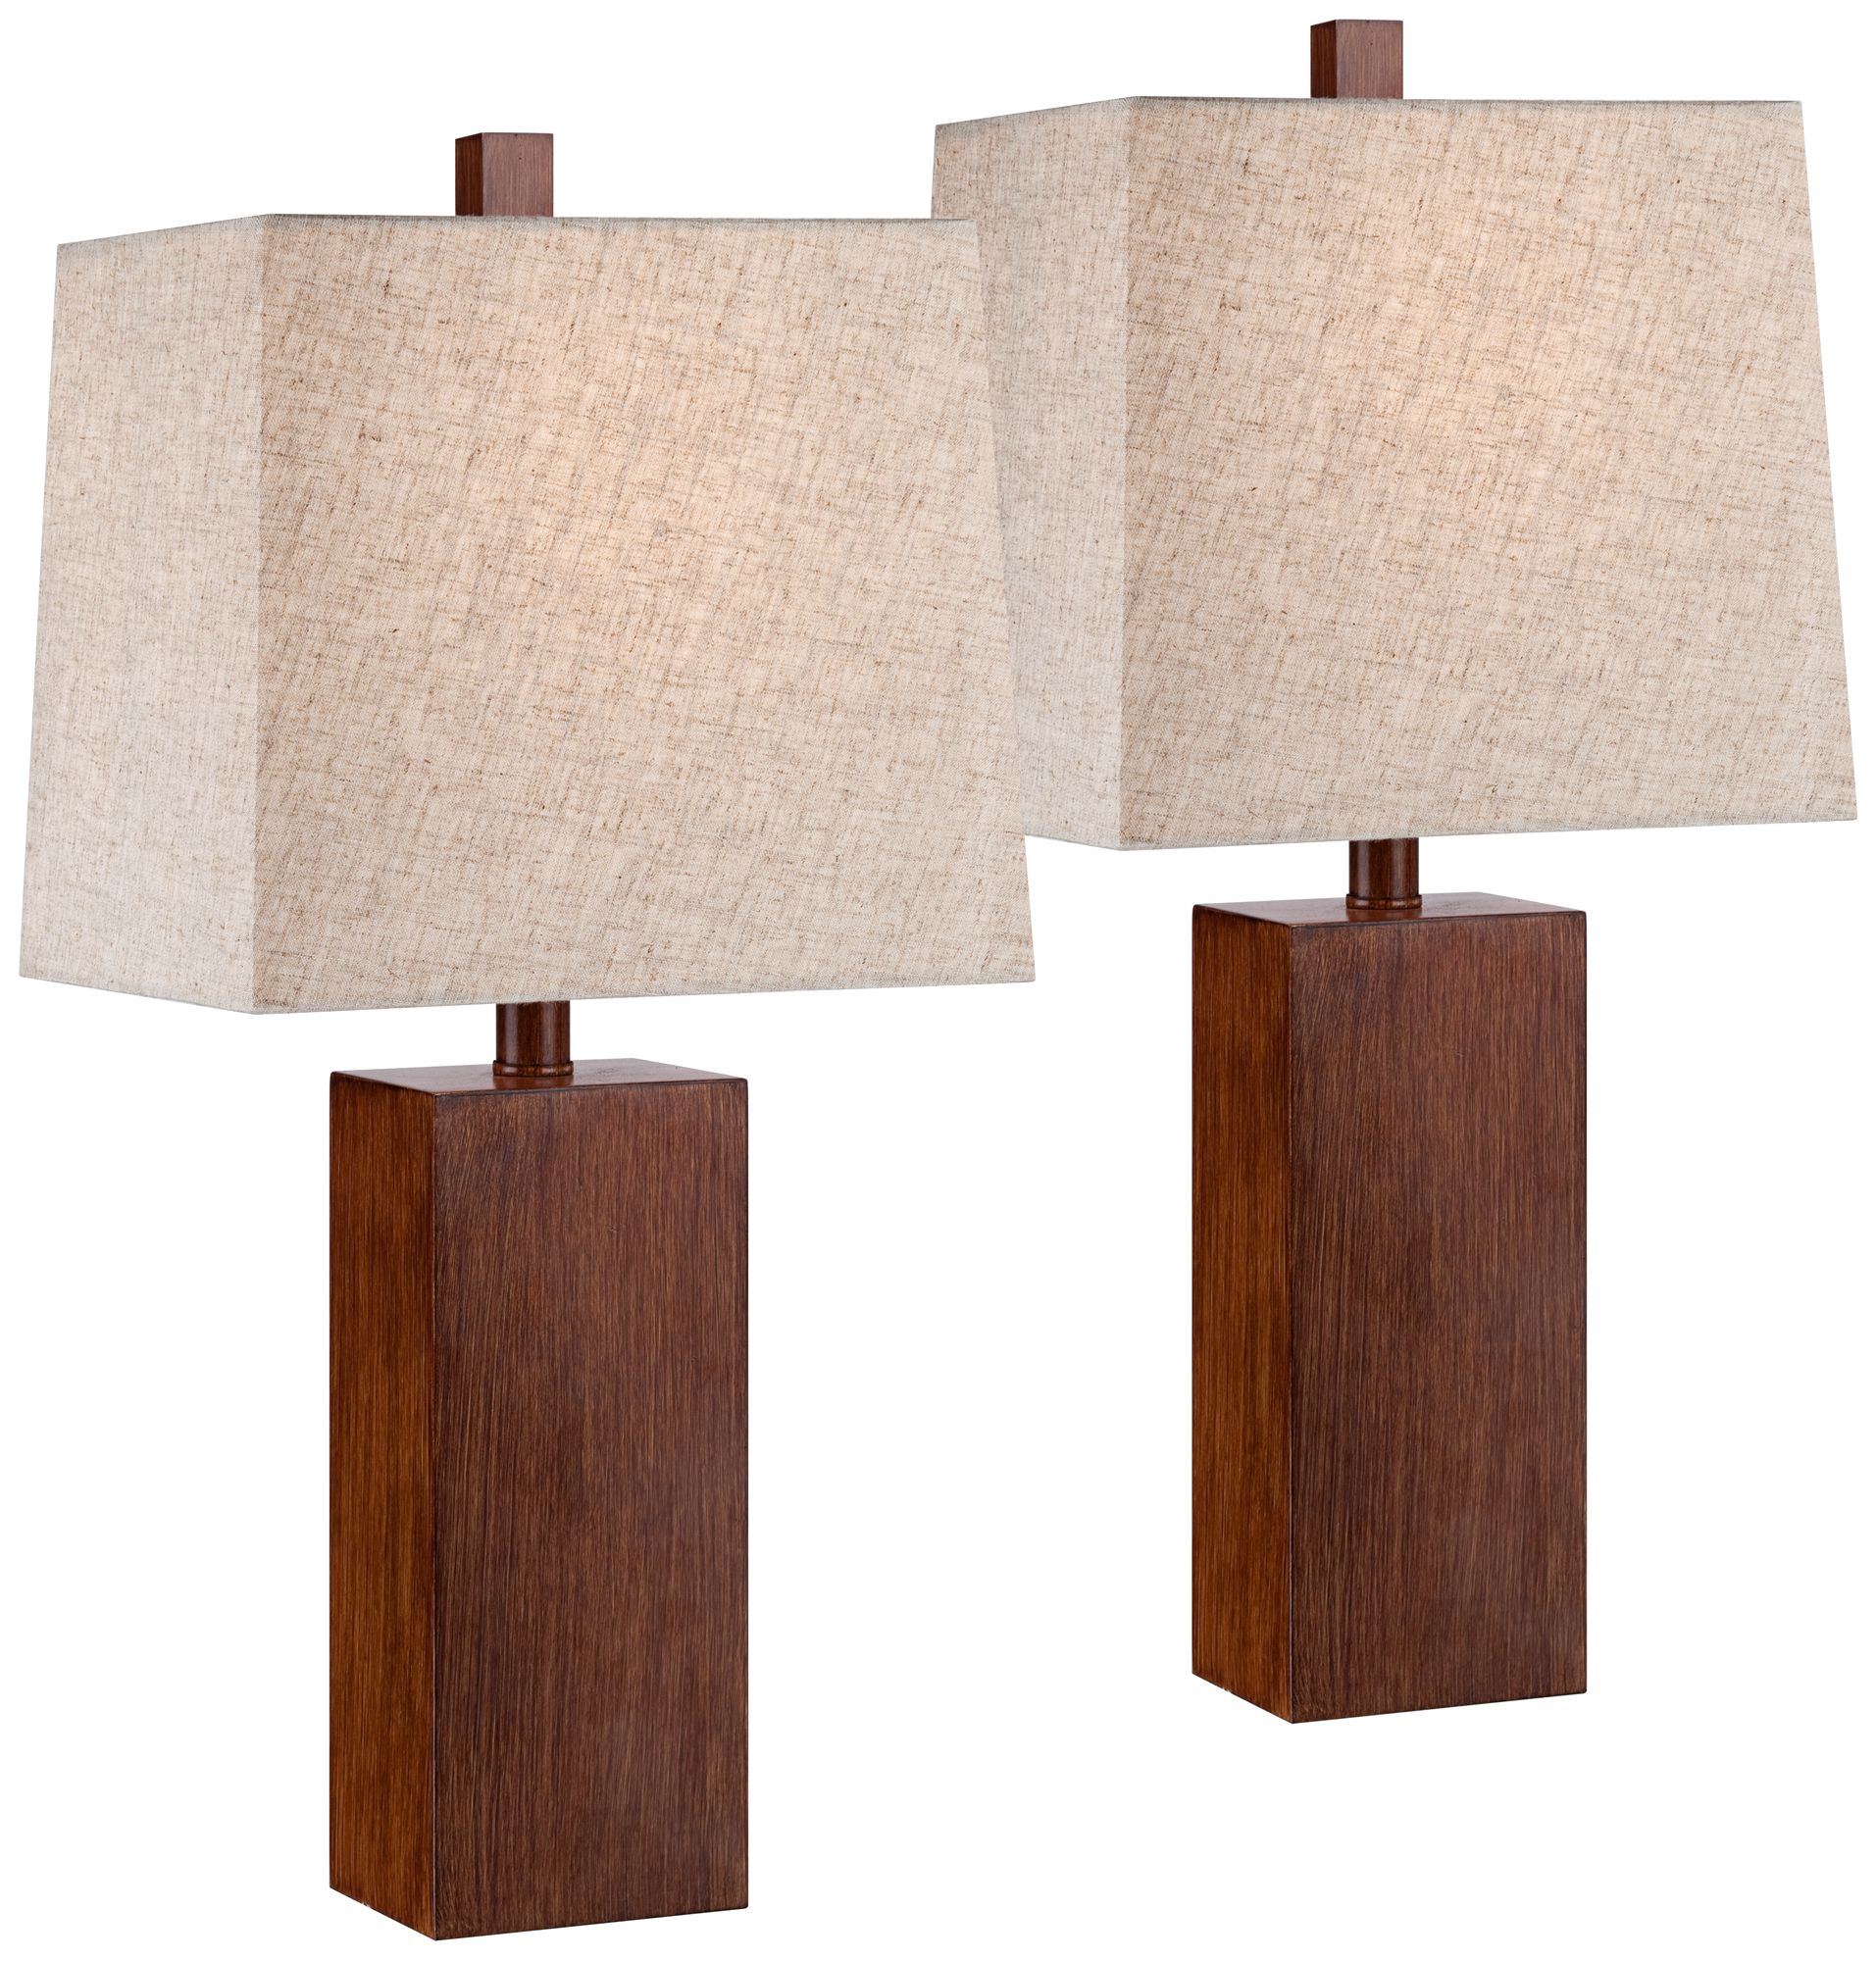 Details About Modern Accent Table Lamps Set Of 2 Brown Wood Tan For Living Room Bedroom Office